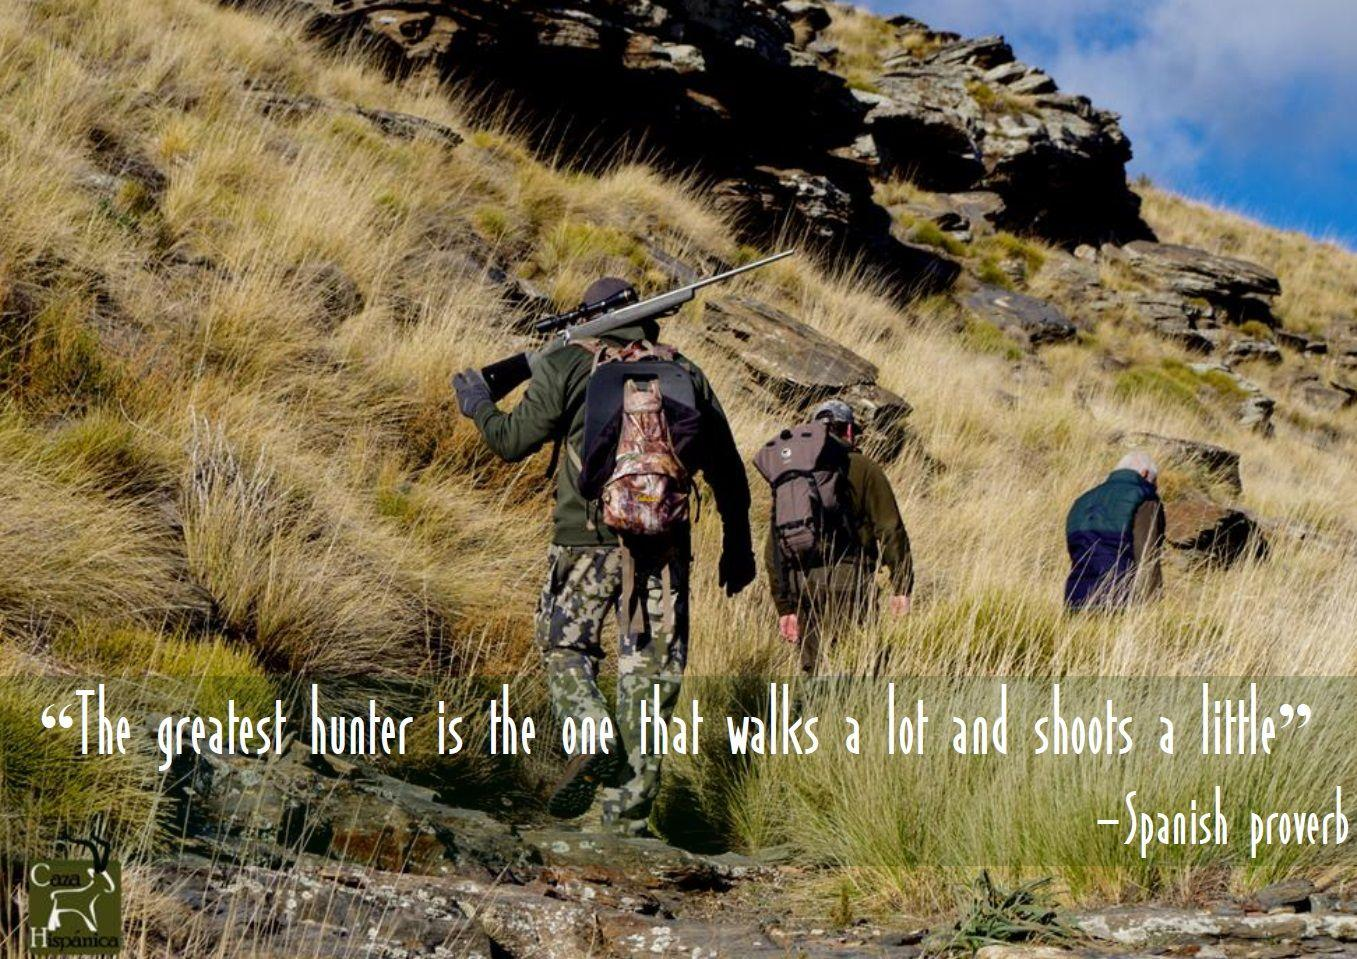 10 Hunting wallpapers and quotes made in Spain